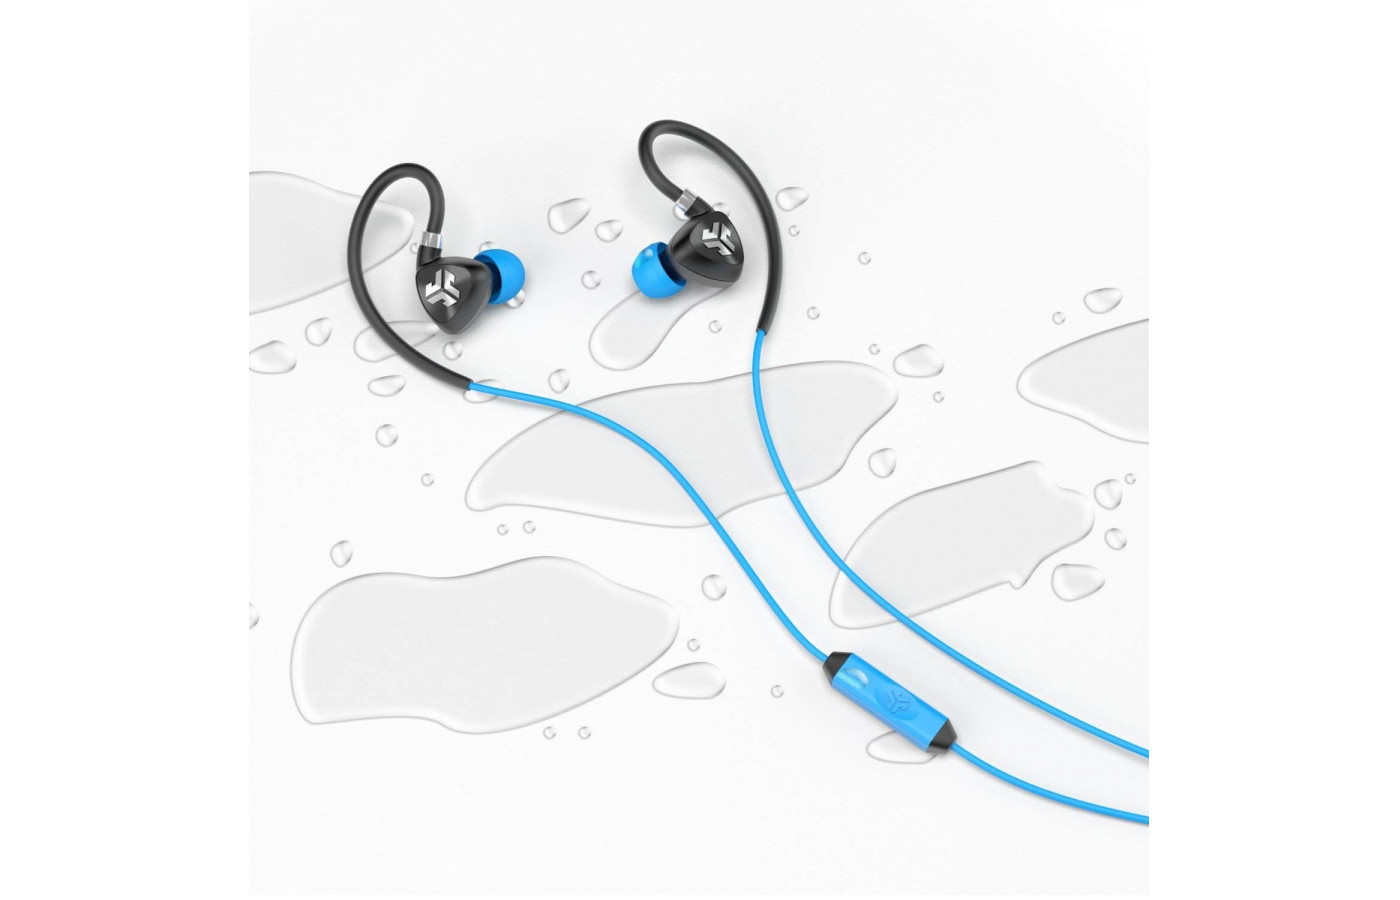 JLab Fit 2.0 sport earbuds wired